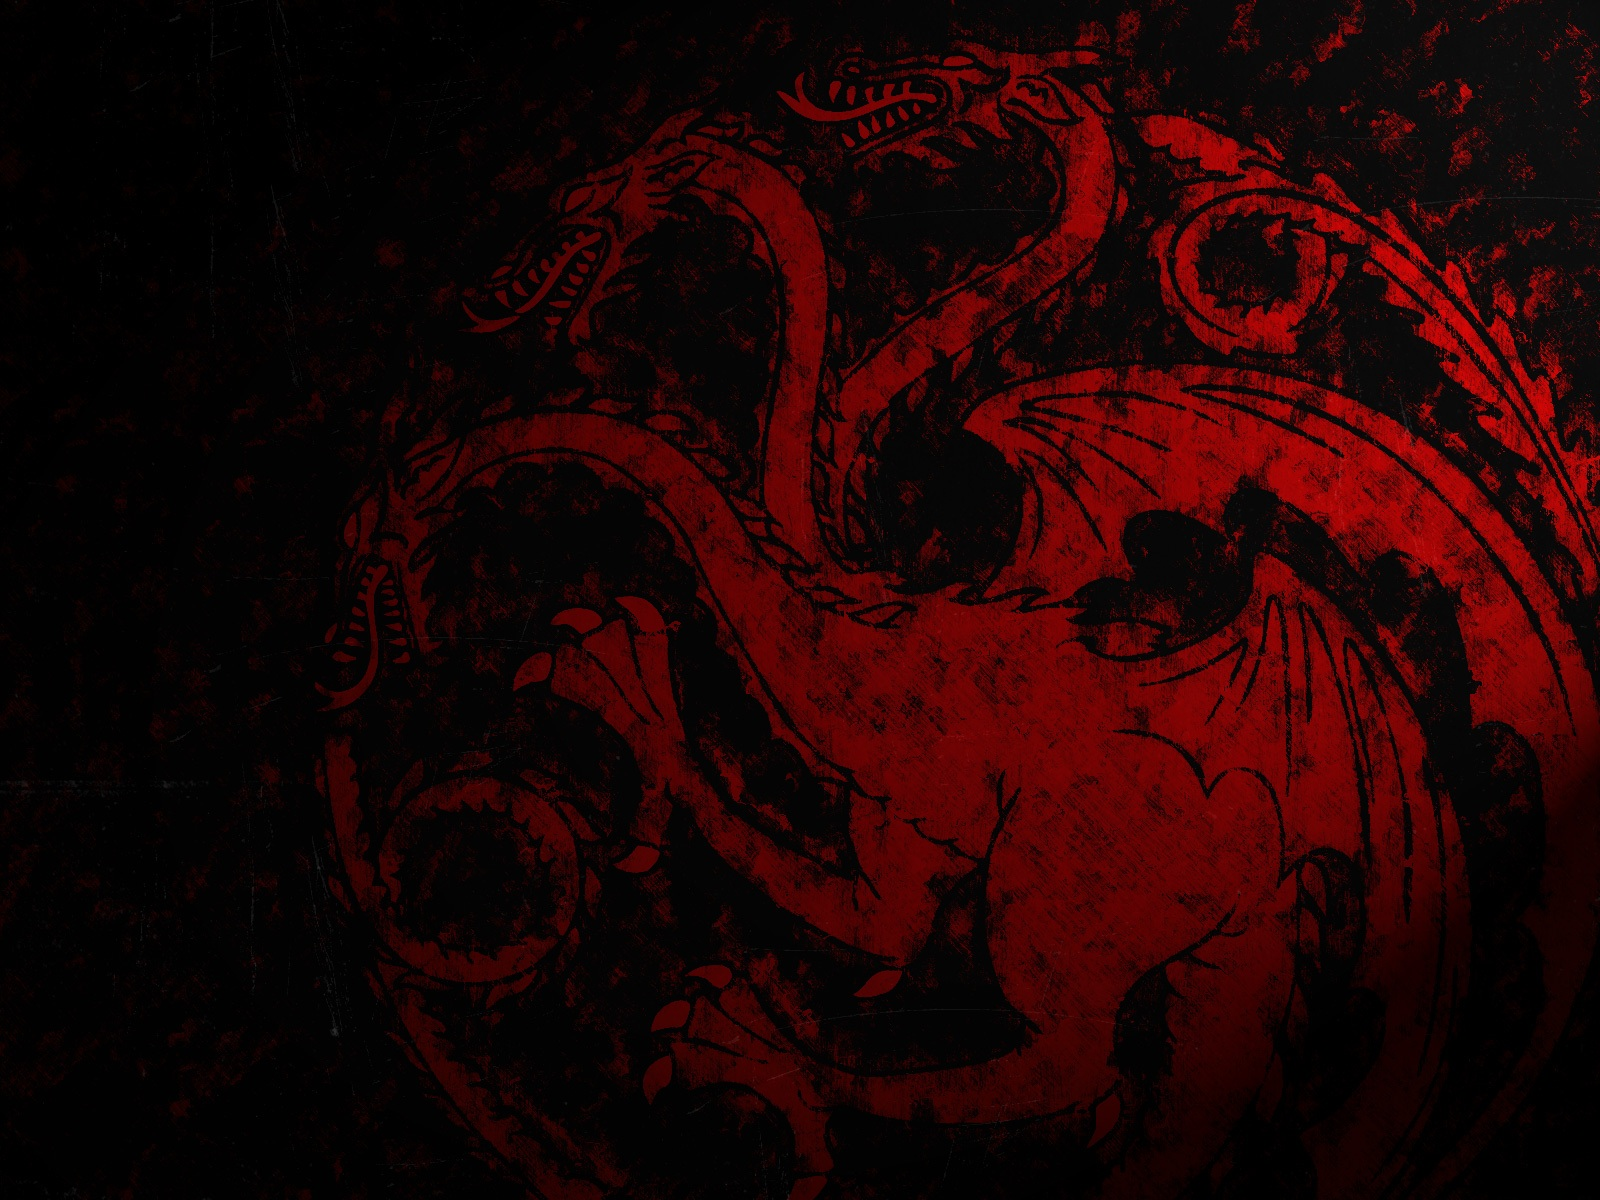 49 Game Of Thrones Wallpaper Targaryen On Wallpapersafari